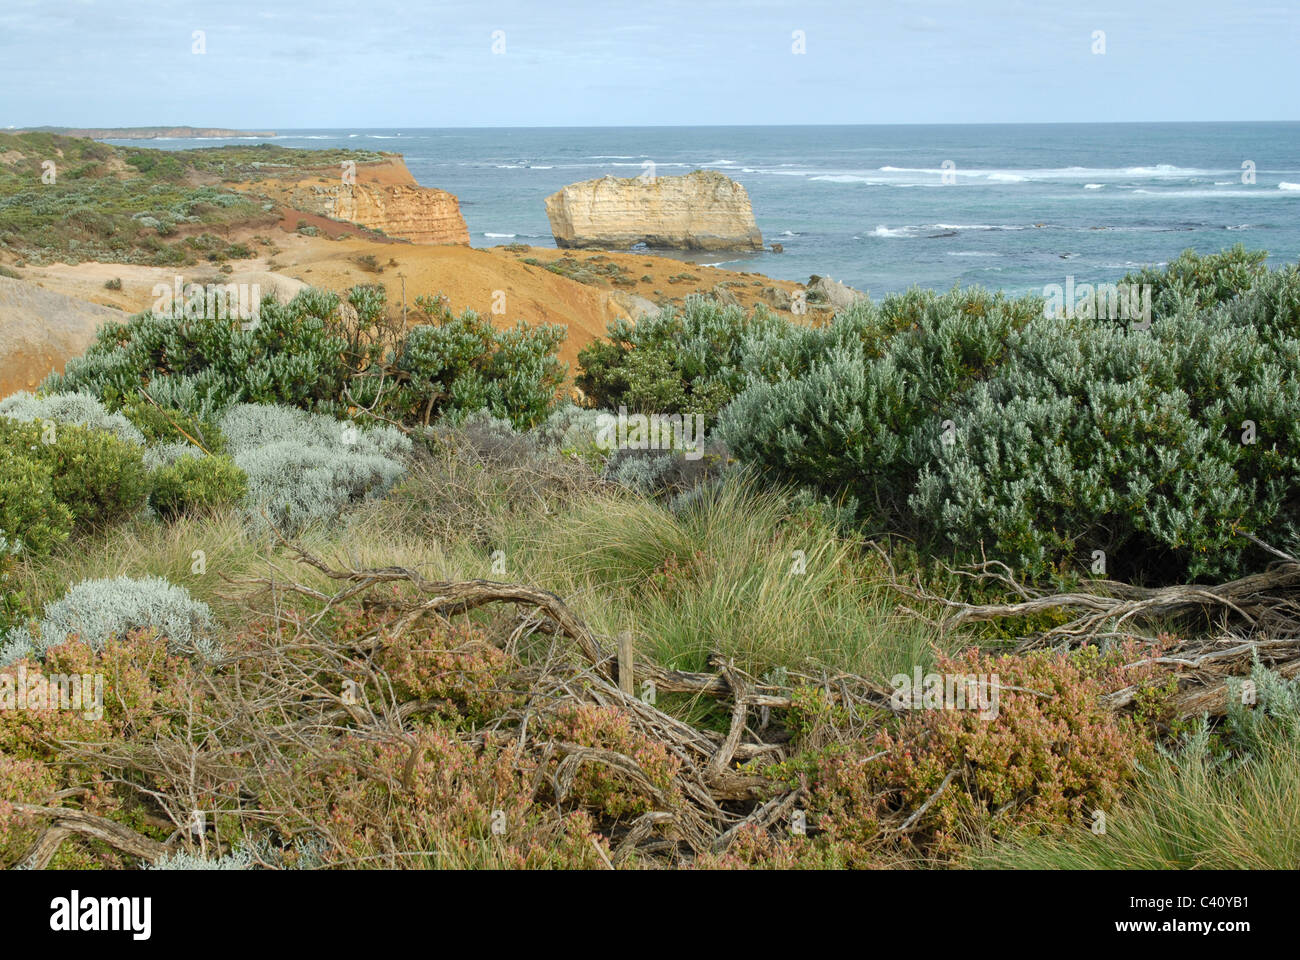 Vegetation and rock formation in the Bay of Isles on the Great Ocean Road, Victoria, Australia - Stock Image